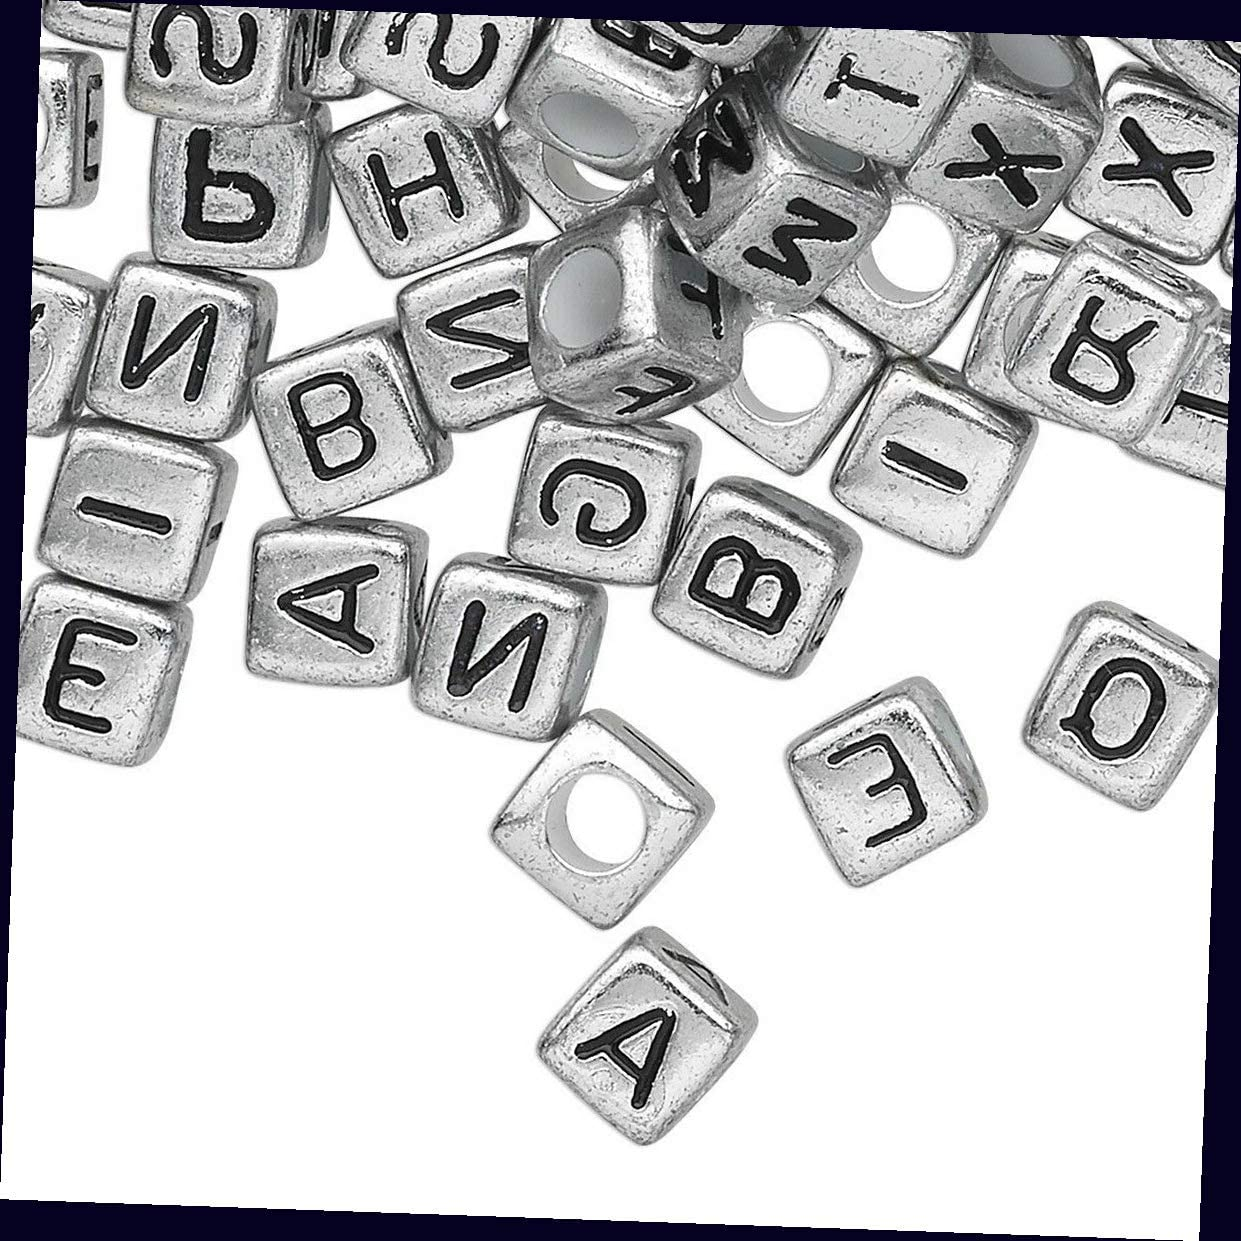 100 Silver Acrylic 4 Sided Alphabet 6x6mm Square Cube Beads for Jewelry Making Bracelets, Necklaces Supplies for DIY Crafts Beadwork